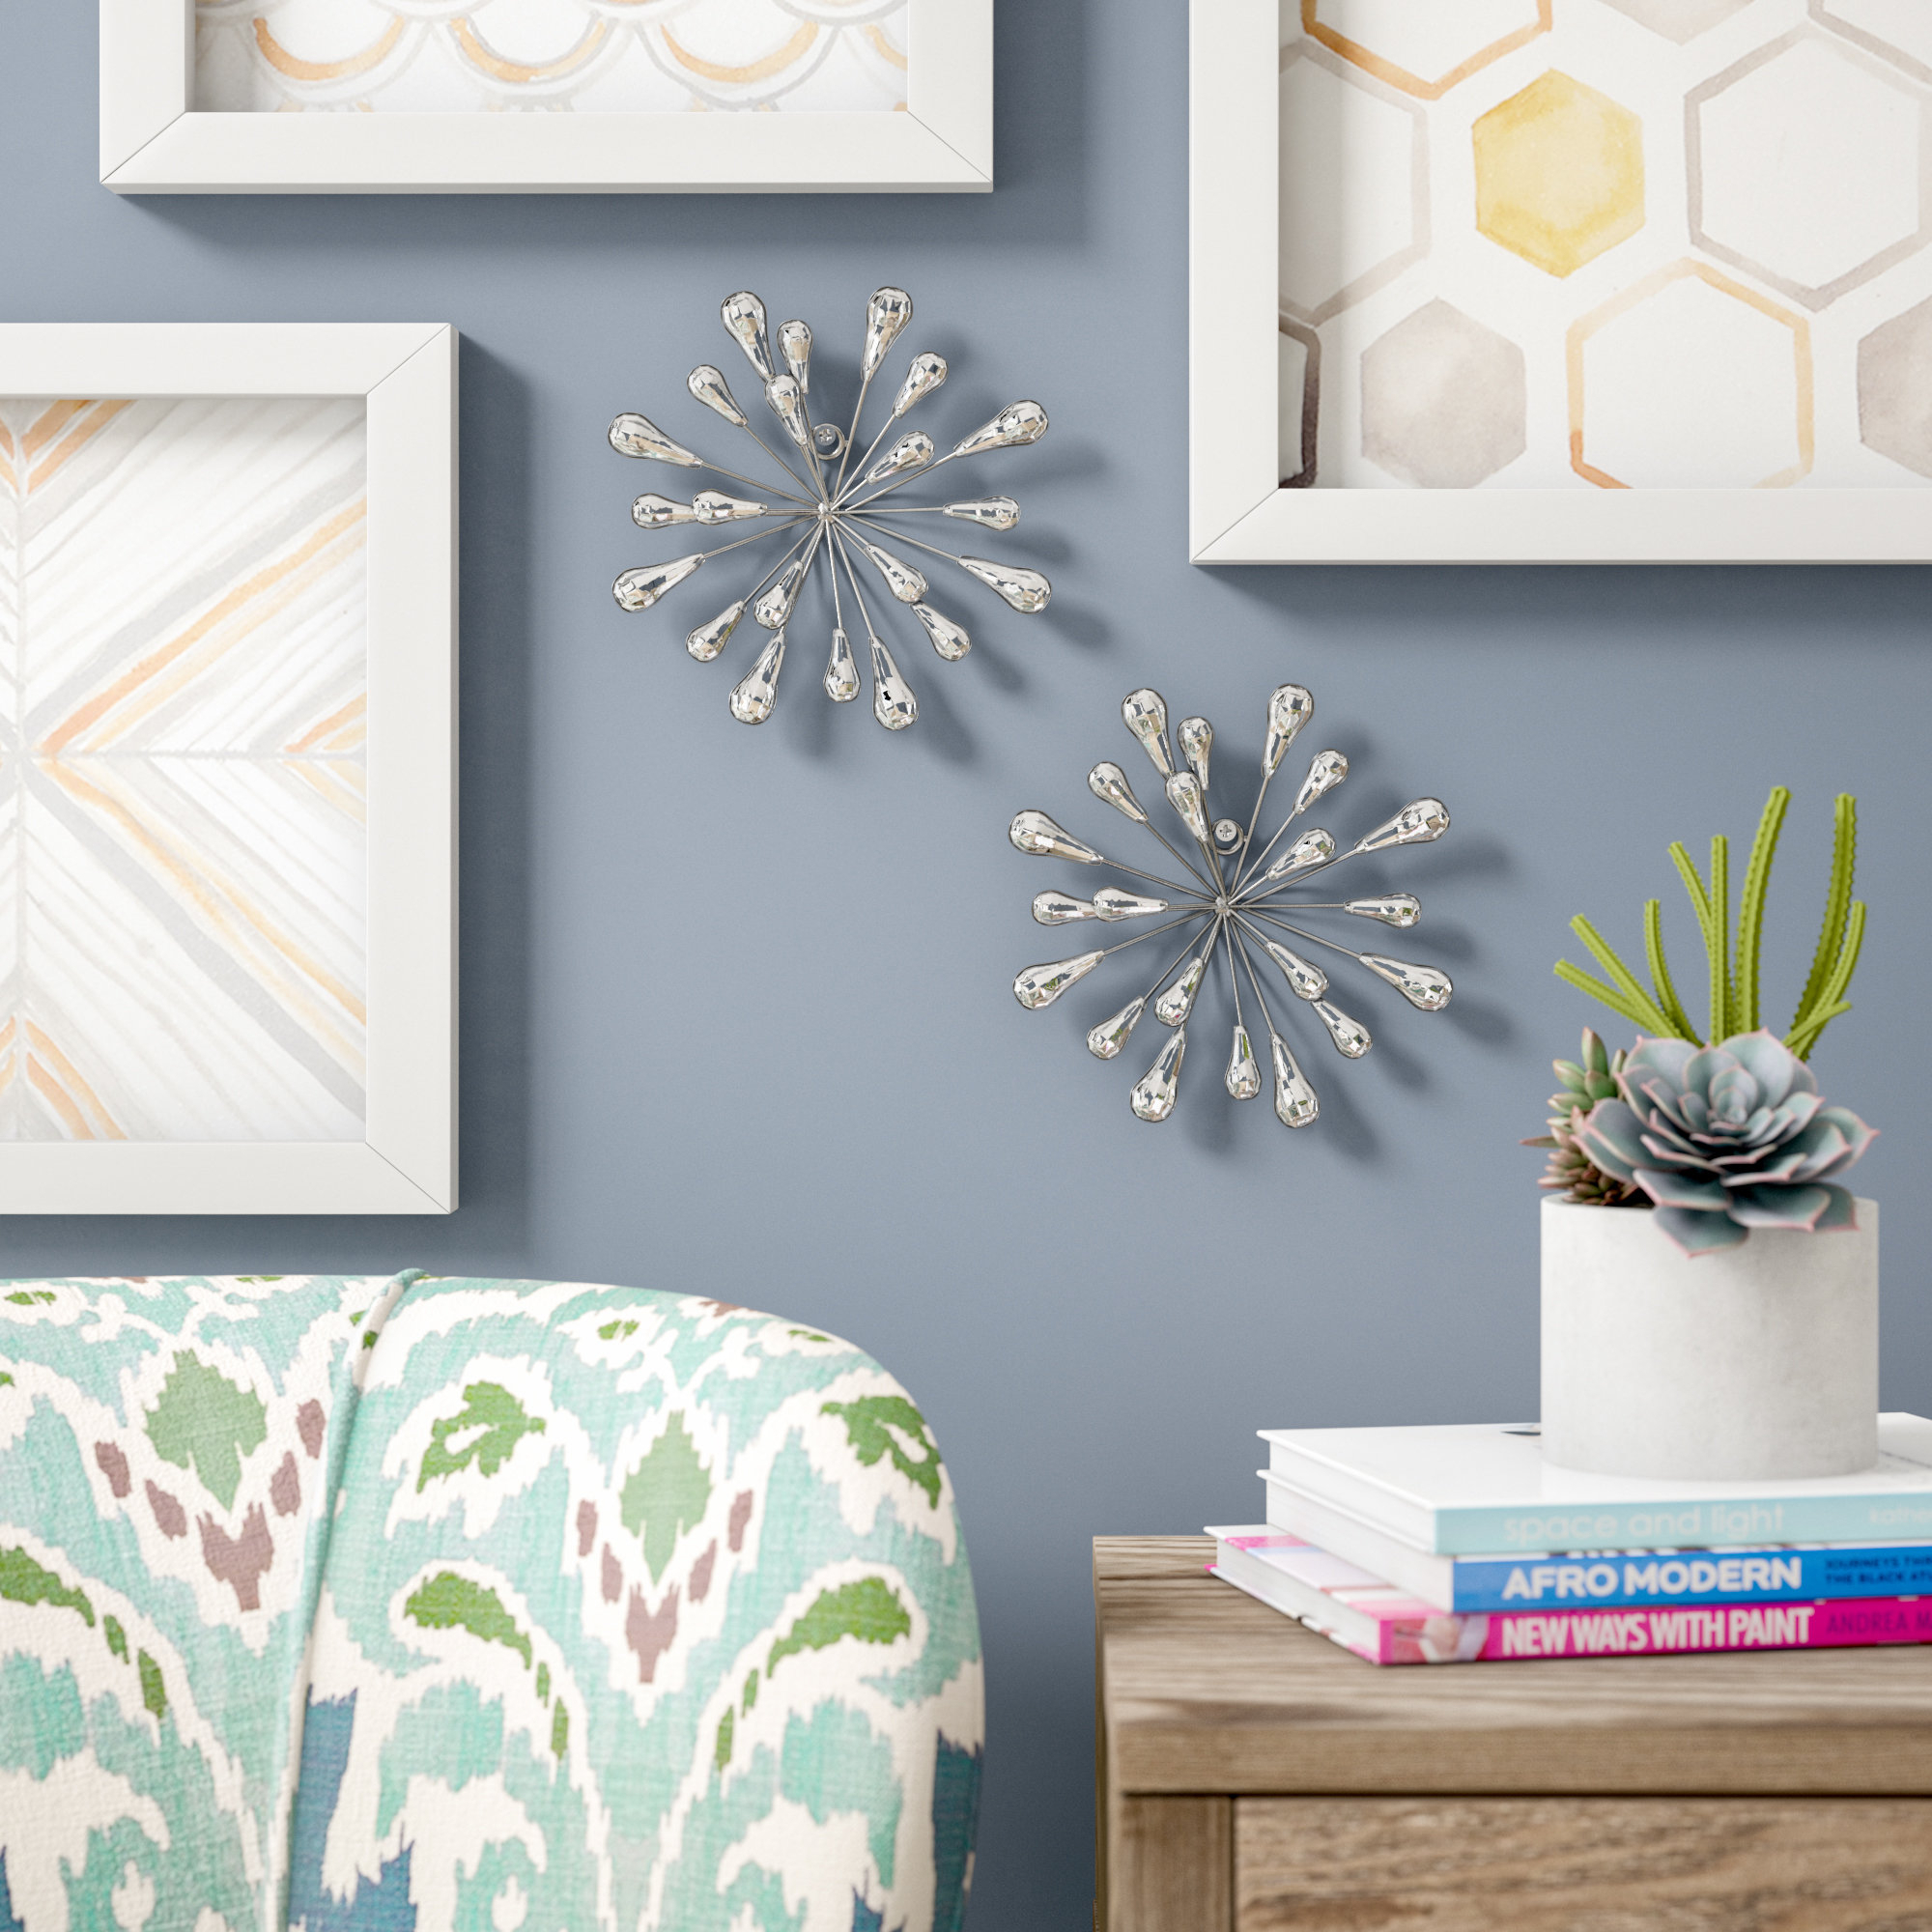 2 Piece Starburst Wall Décor Set Throughout Rings Wall Decor By Wrought Studio (Photo 4 of 30)